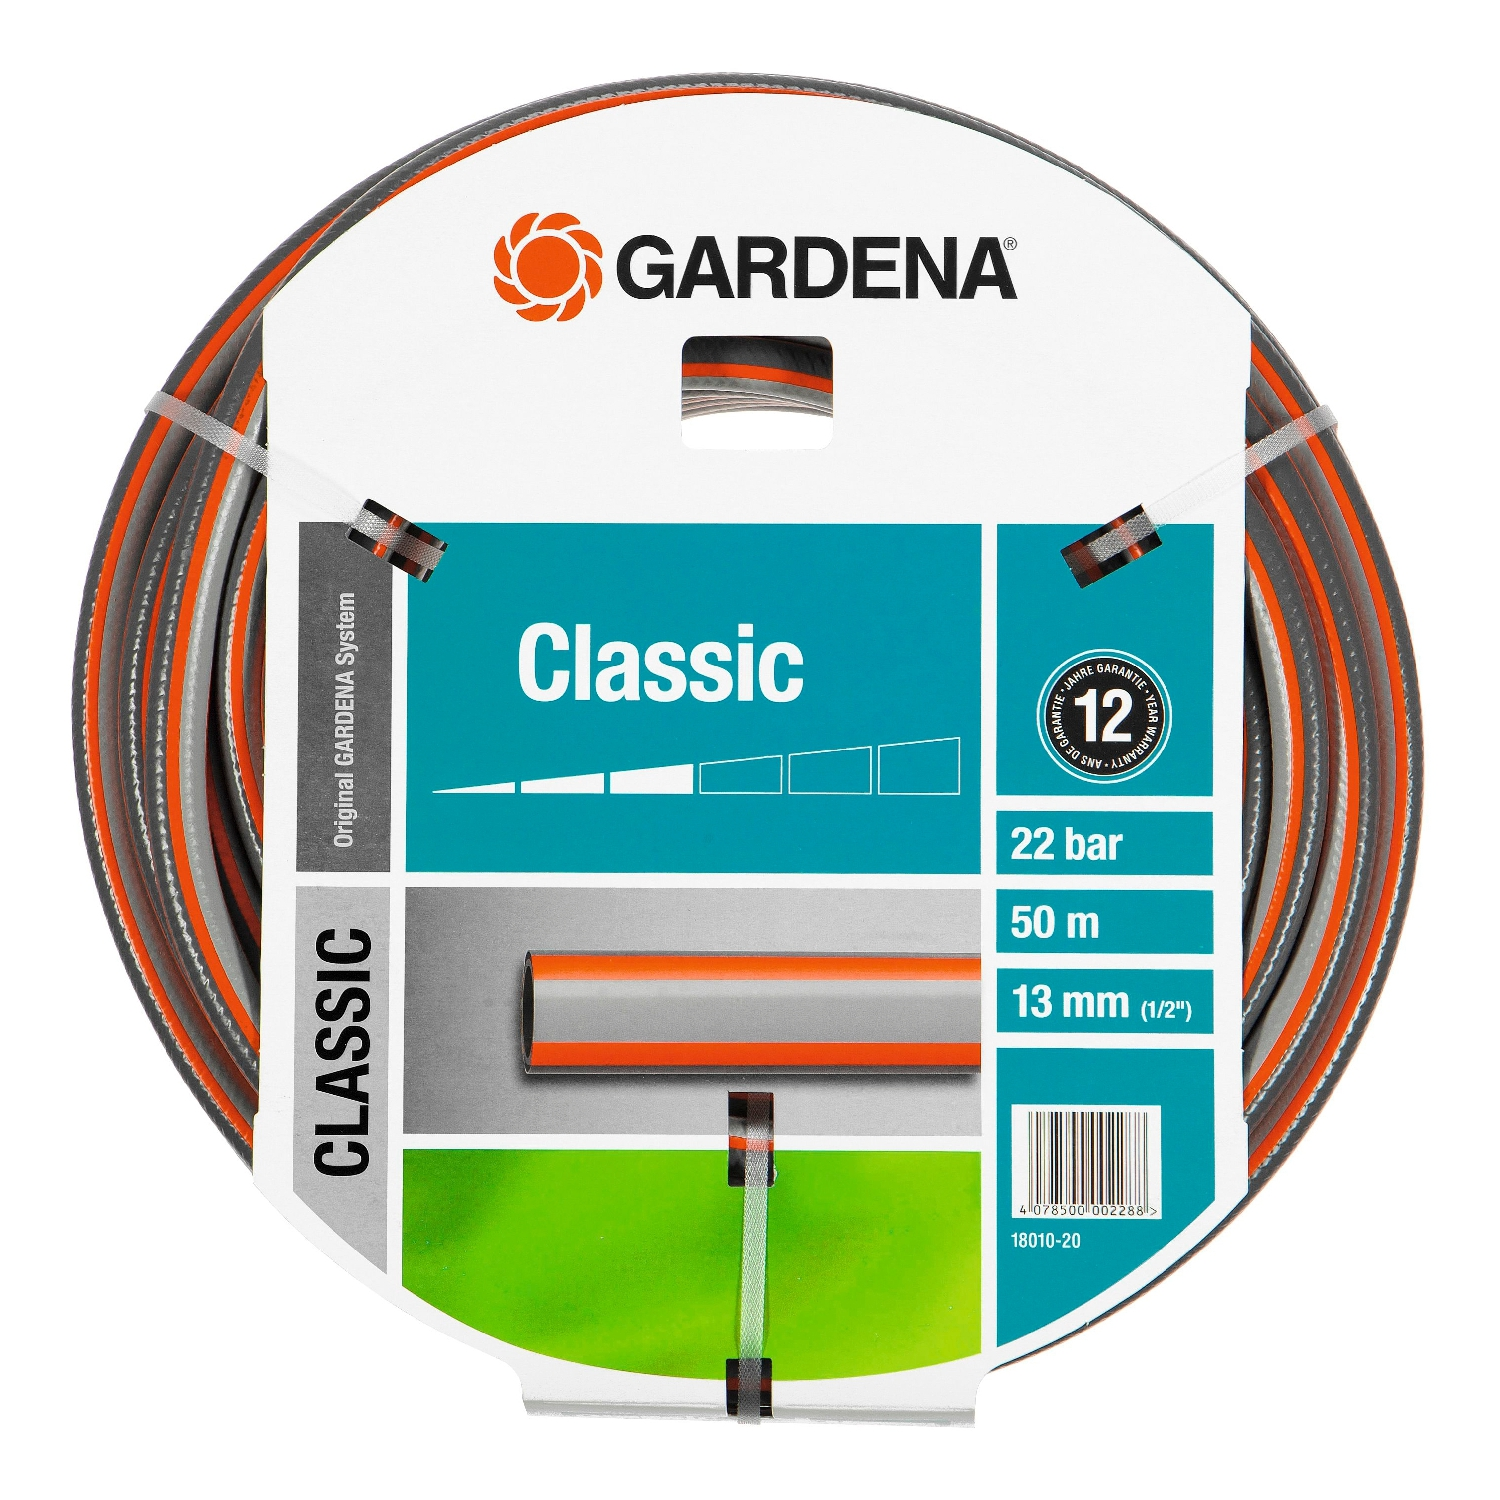 Watering hose GARDENA 18010-20.000.00 (20 m Length, diameter 13mm (1/2) maximum pressure 22 bar, reinforced, светонепроницаем, resistant to uv) стоимость